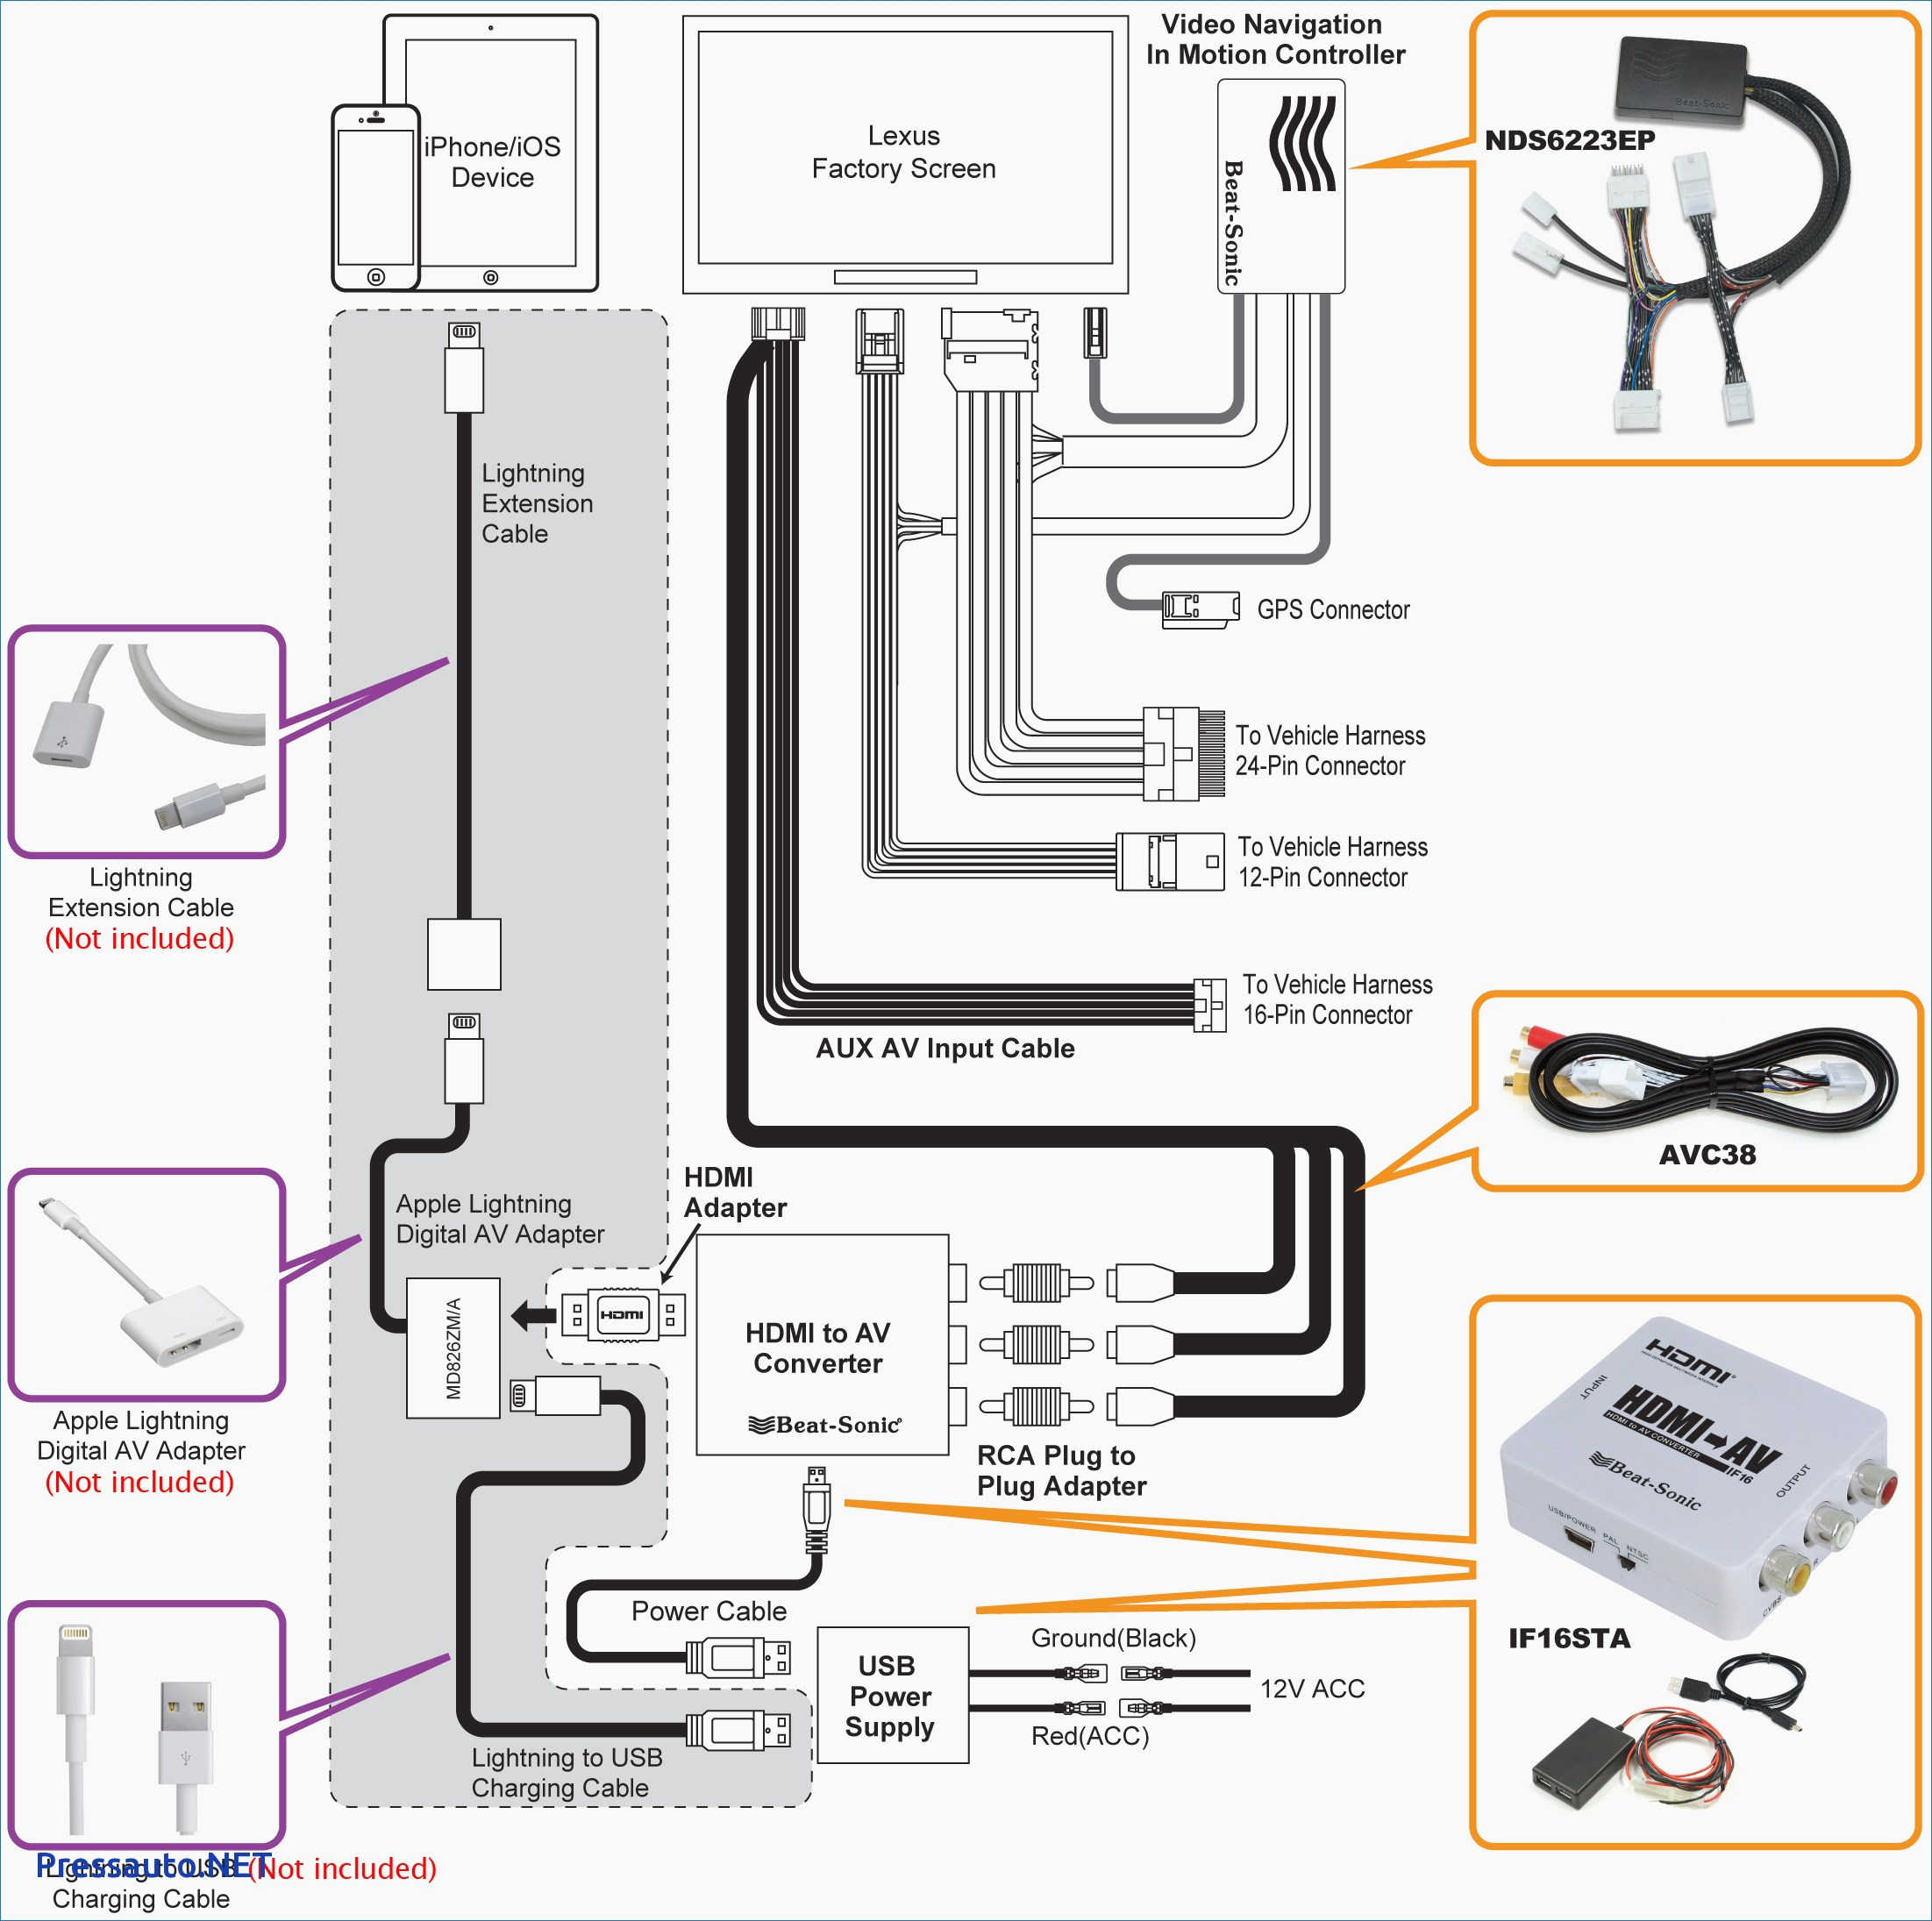 Ipod Cable Wiring Diagram | Manual E-Books - Wiring Diagram For Usb Cable To Ipod